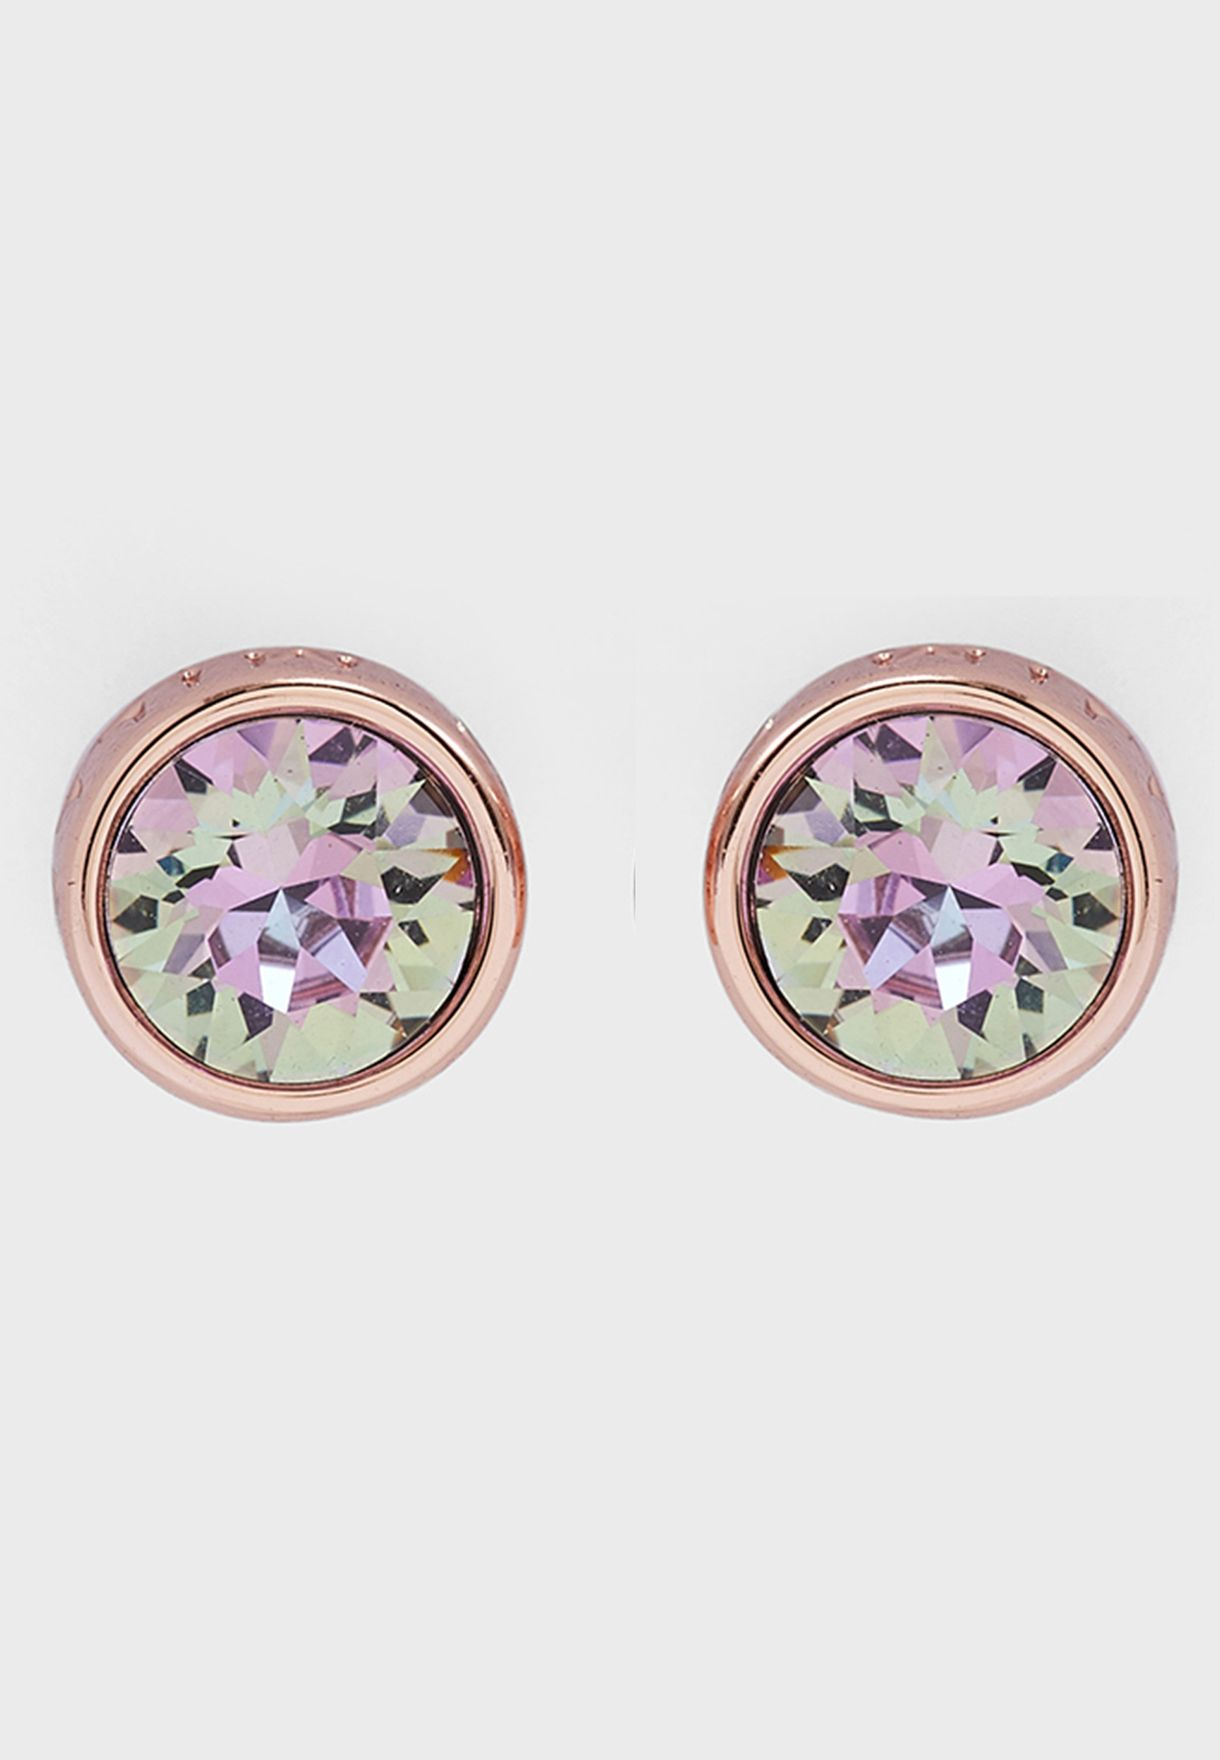 Logo Stud Earrings With Swarovski Elements